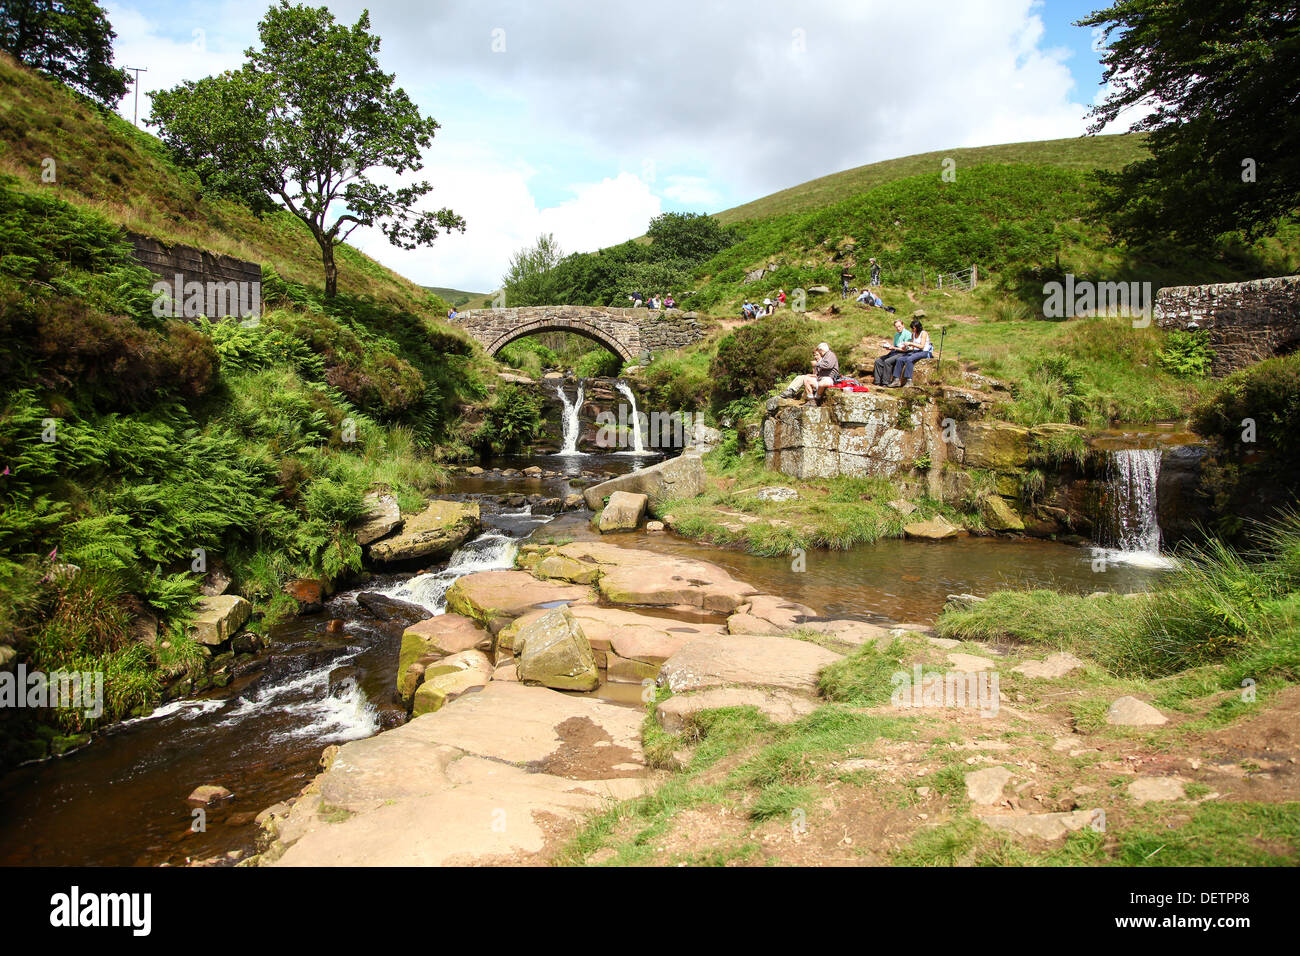 Packhorse Bridge at the River Dane at Three Shires Head where the counties of Cheshire Derbyshire Staffordshire meet England UK - Stock Image